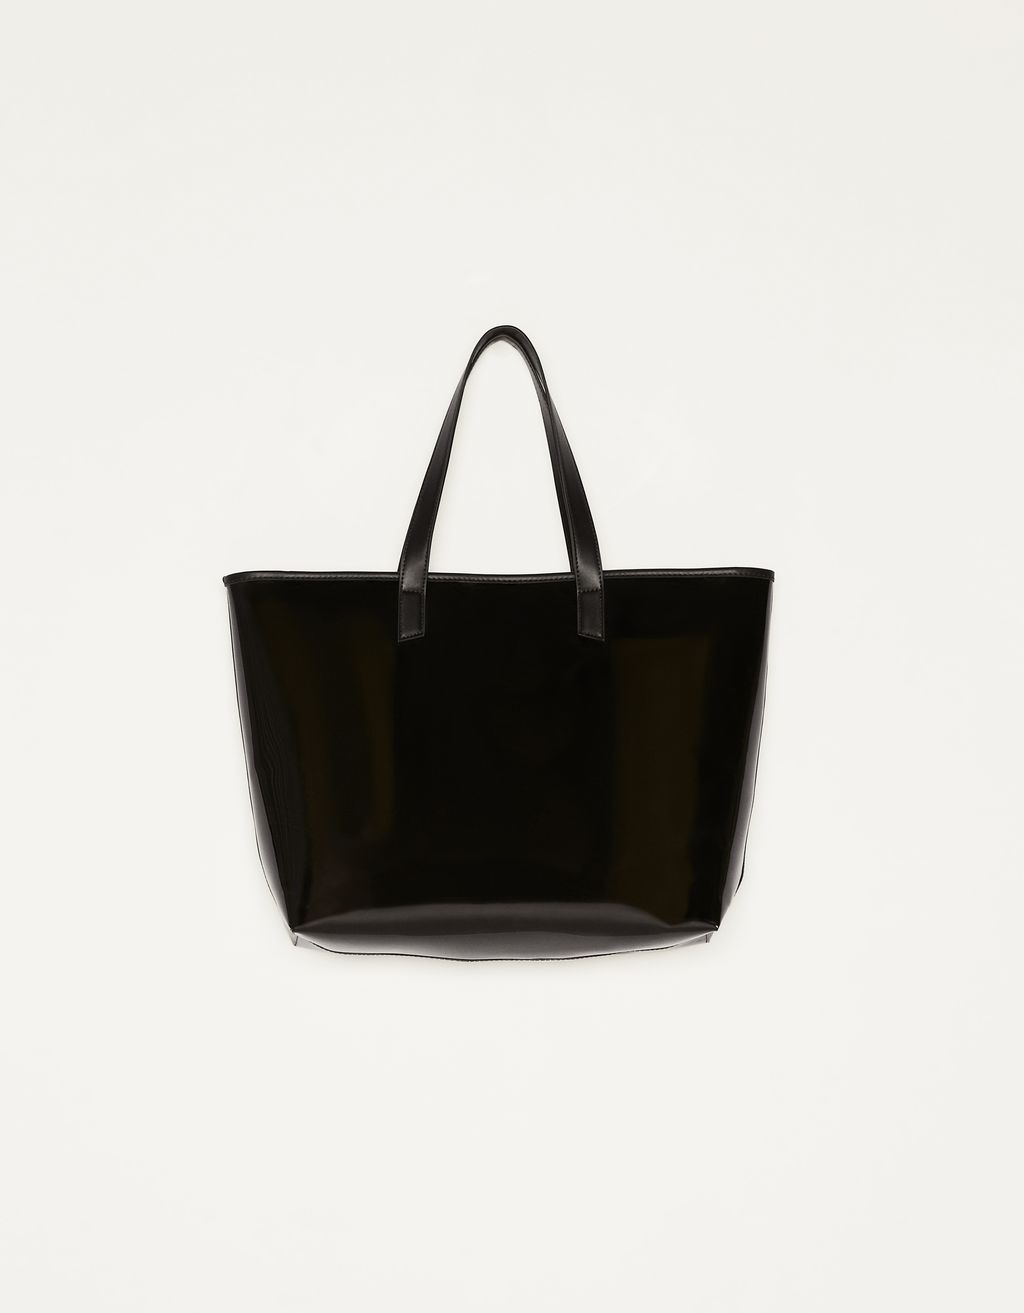 Semi-sheer tote bag